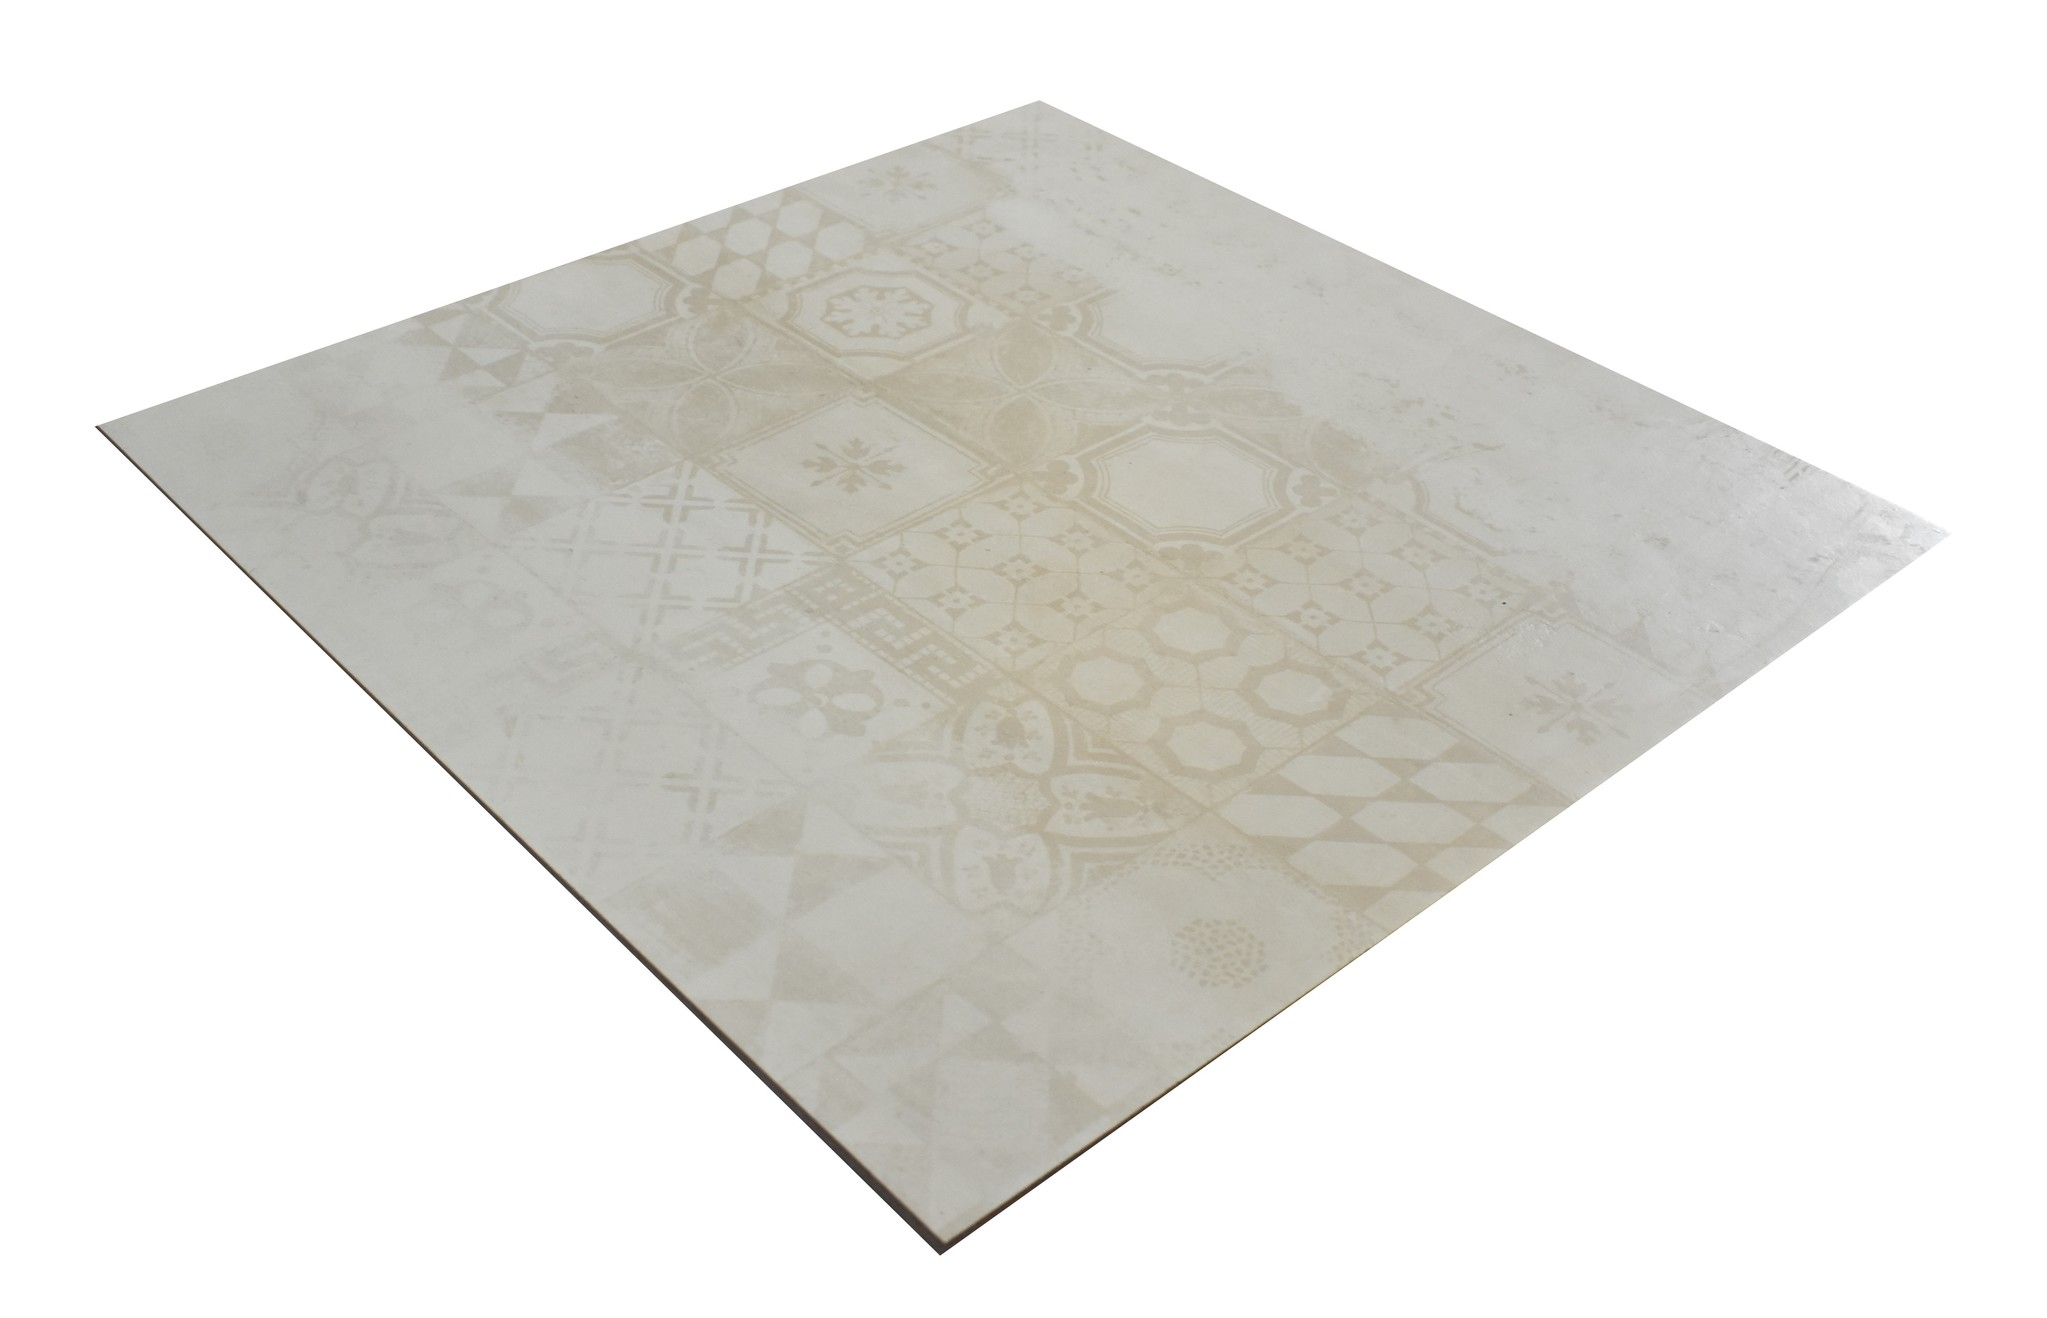 Decor Avorio Floor Tiles